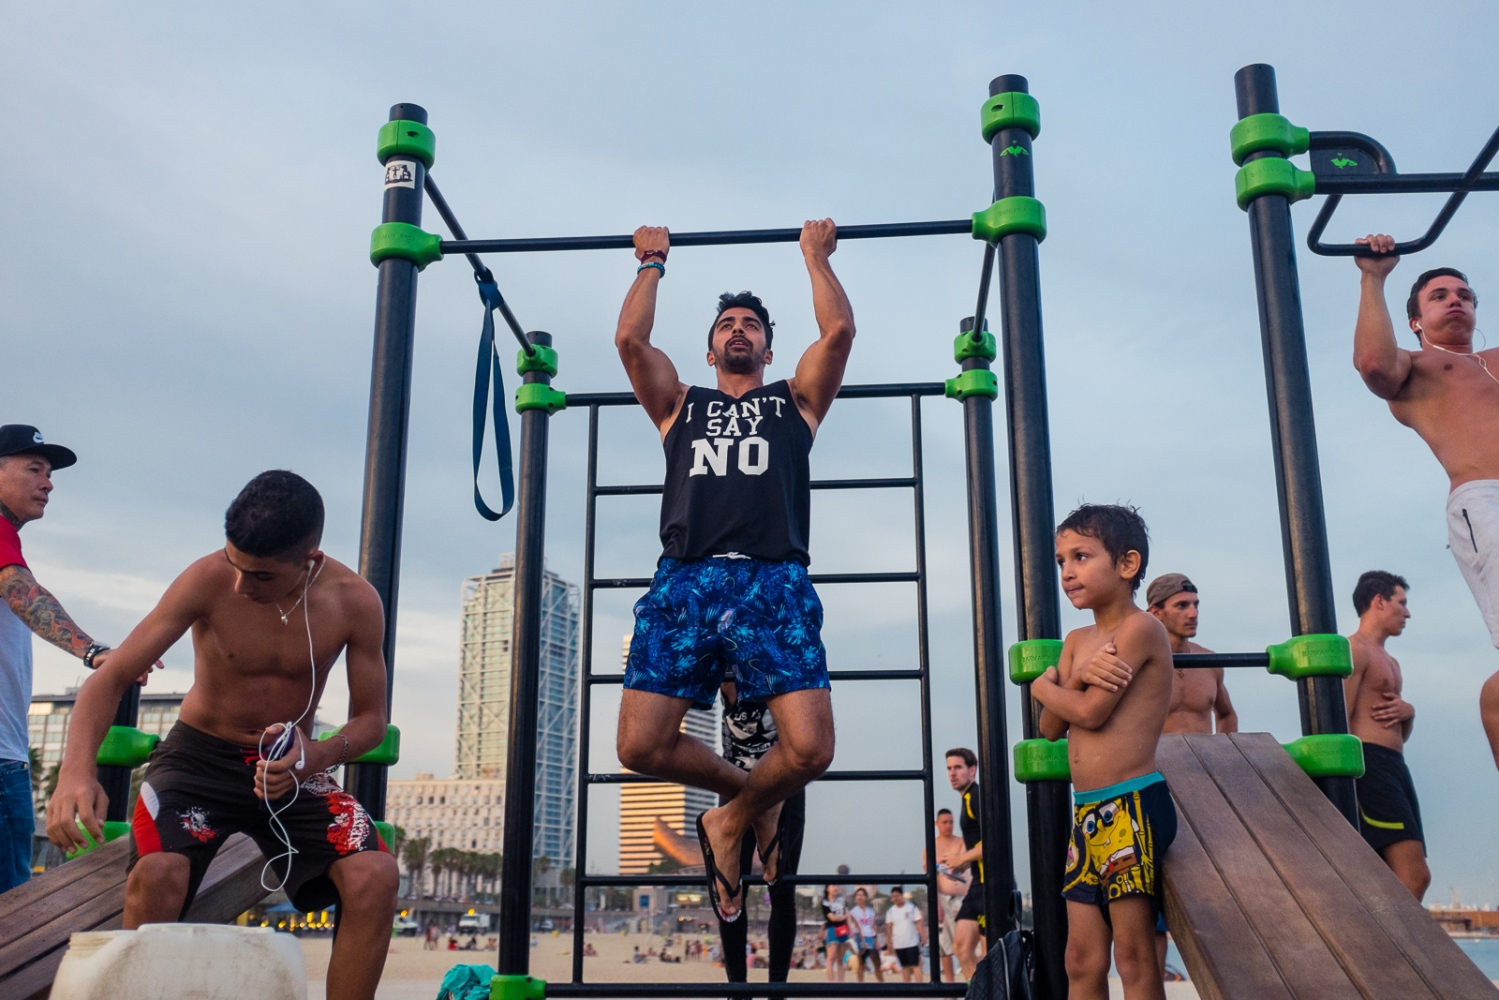 Barcelona, SPAIN, September 4, 2016: Street Workout/ Calisthenics scene at Barceloneta beach.